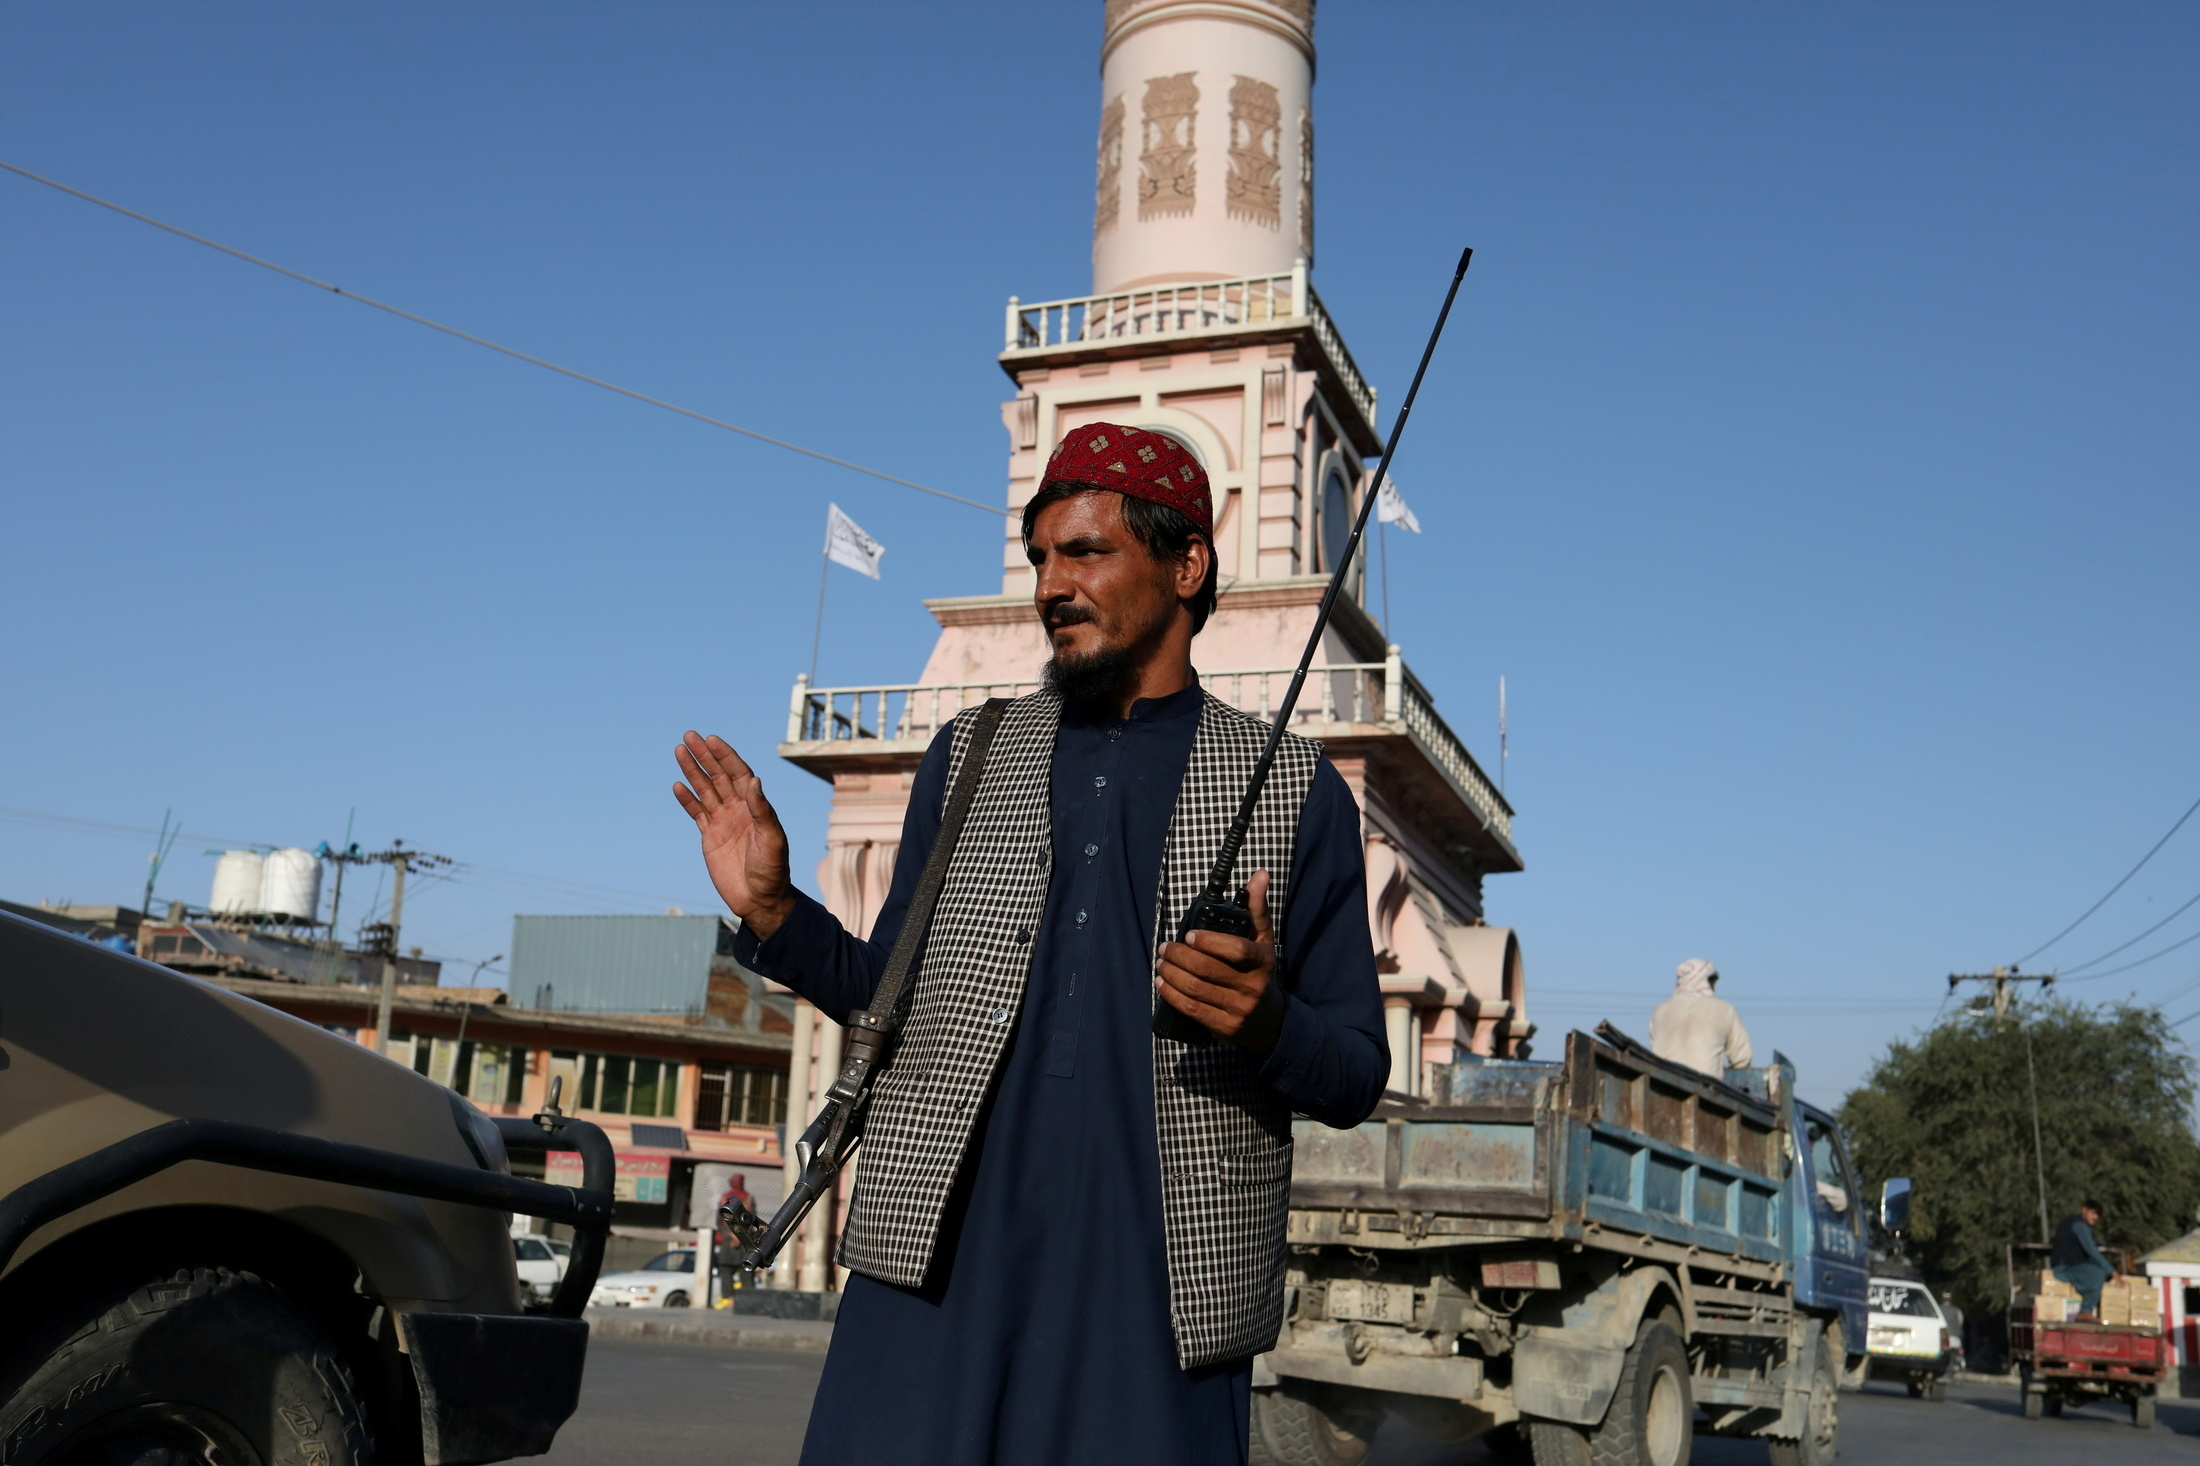 A Taliban soldier stands on a street in Kabul, Afghanistan September 1, 2021. WANA (West Asia News Agency) via REUTERS